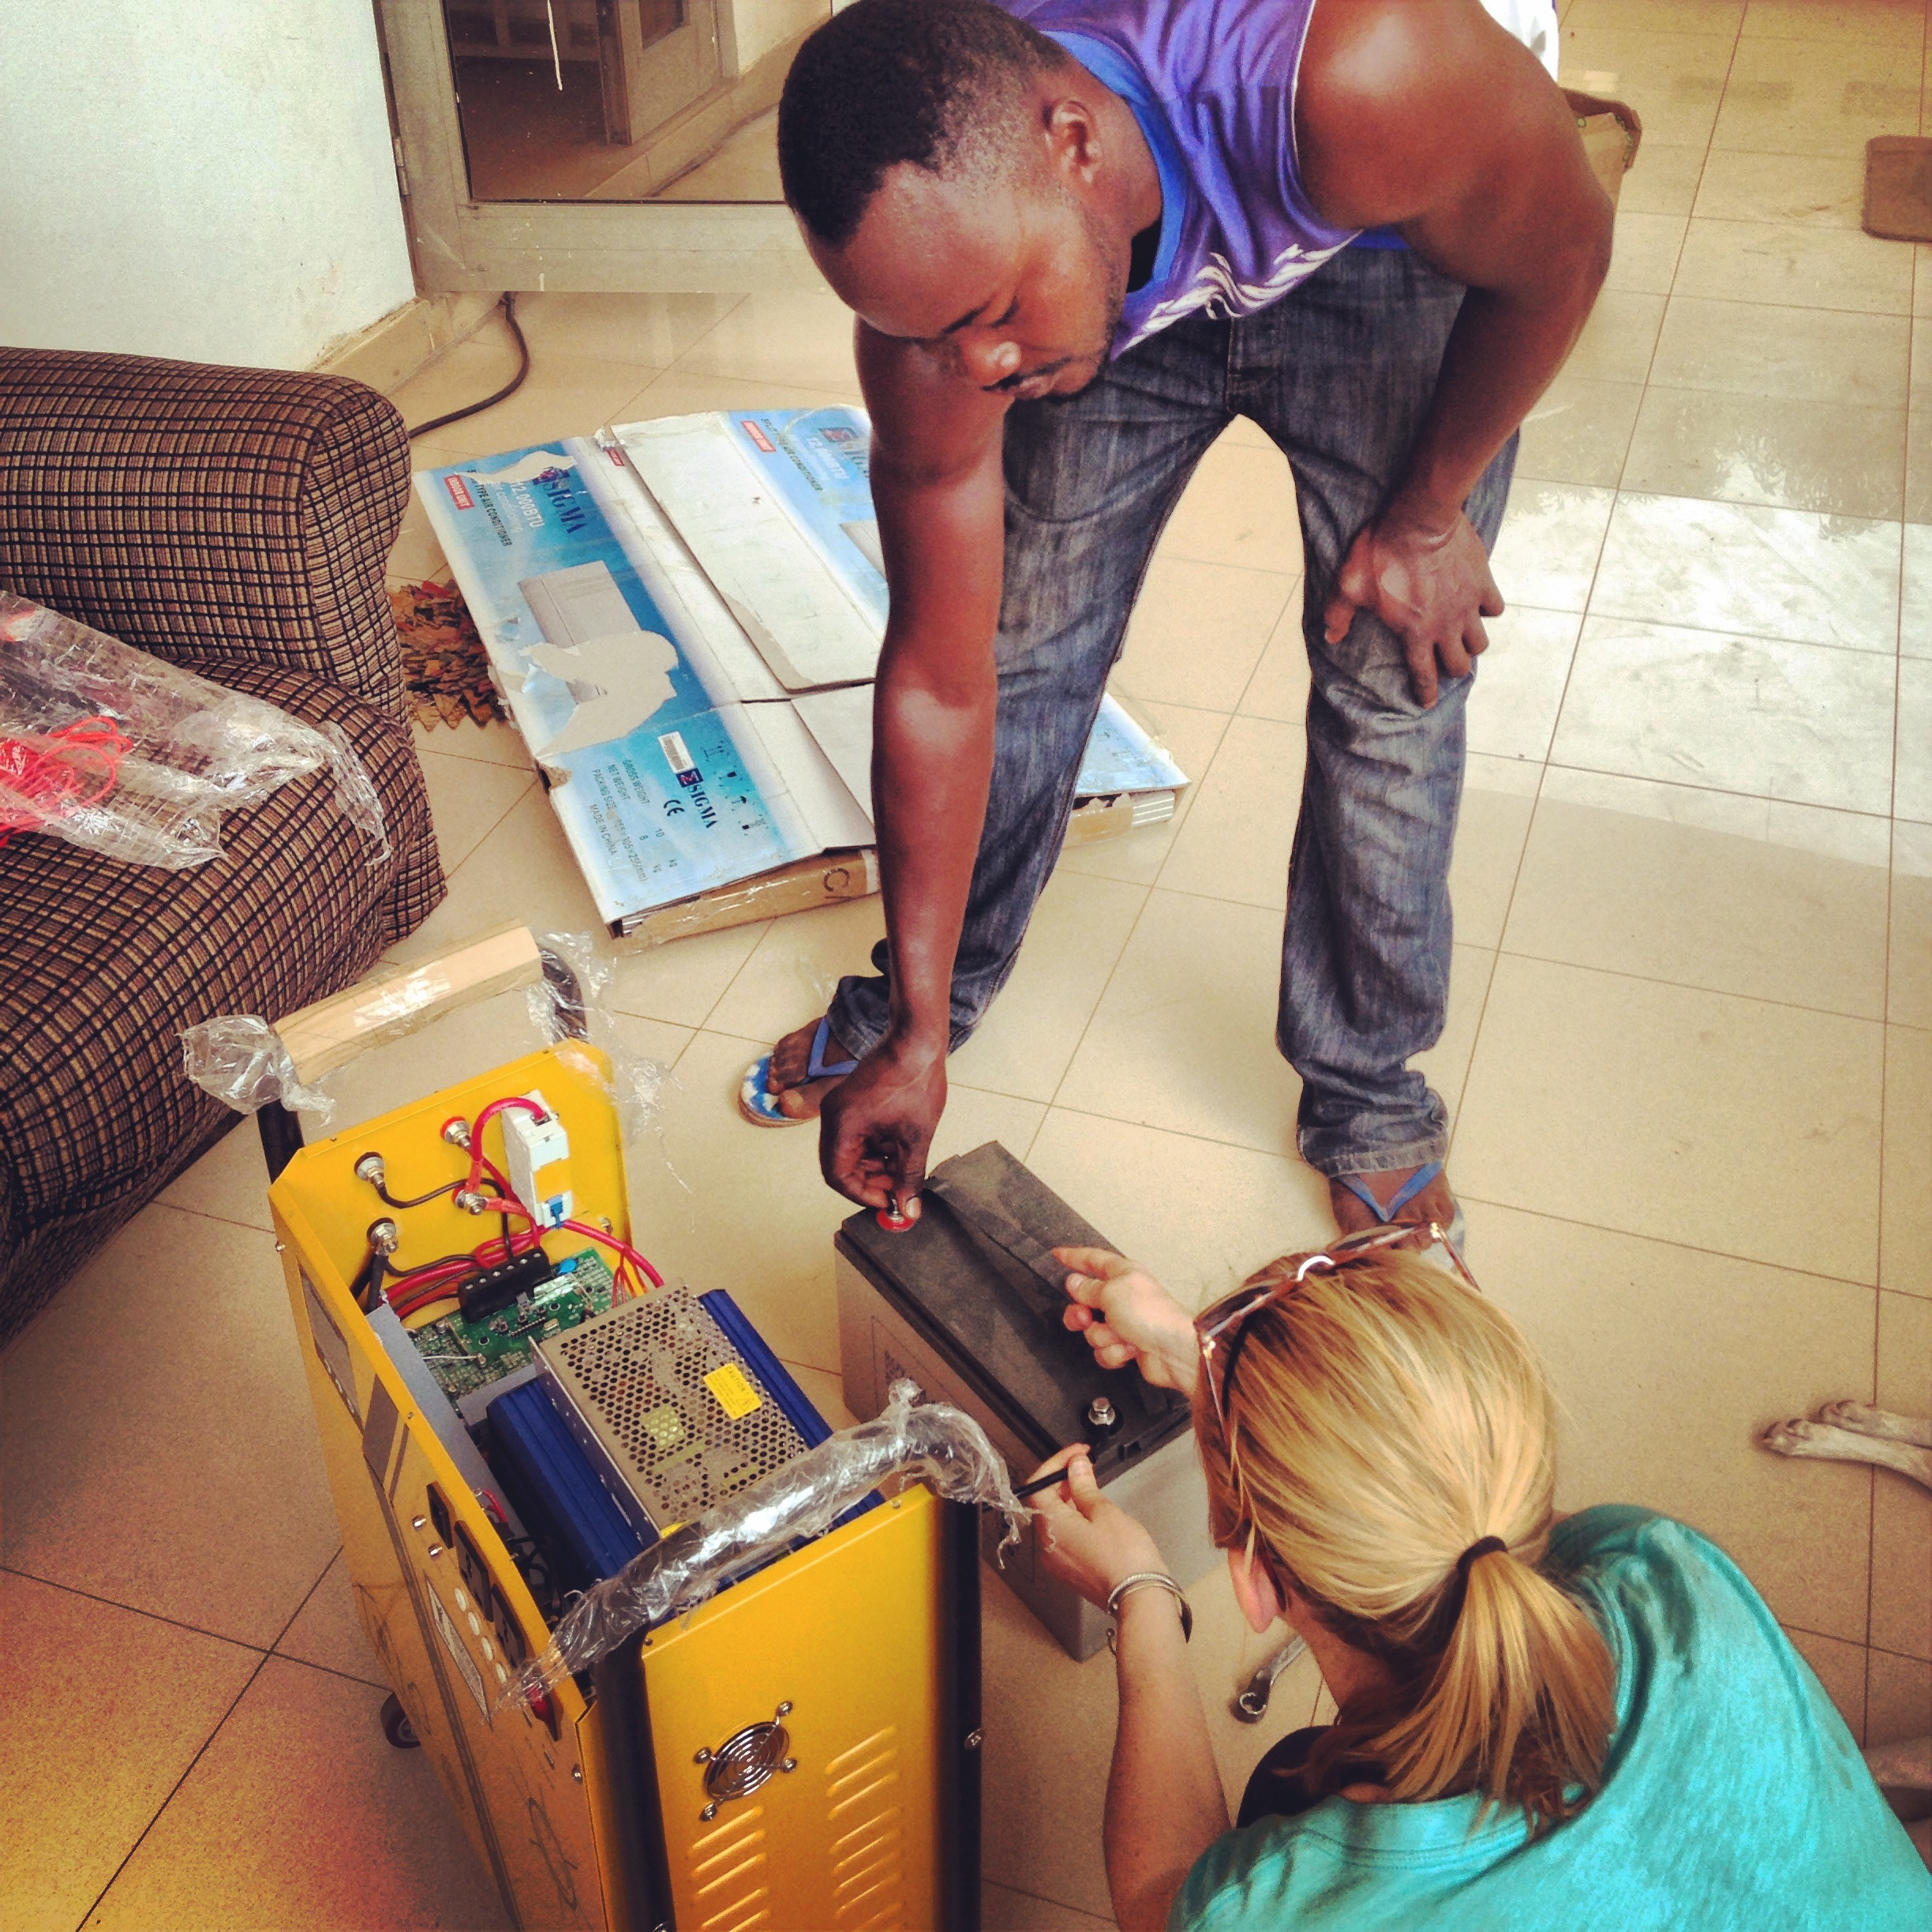 Shak teaching Sam how to connect the battery to the inverter.